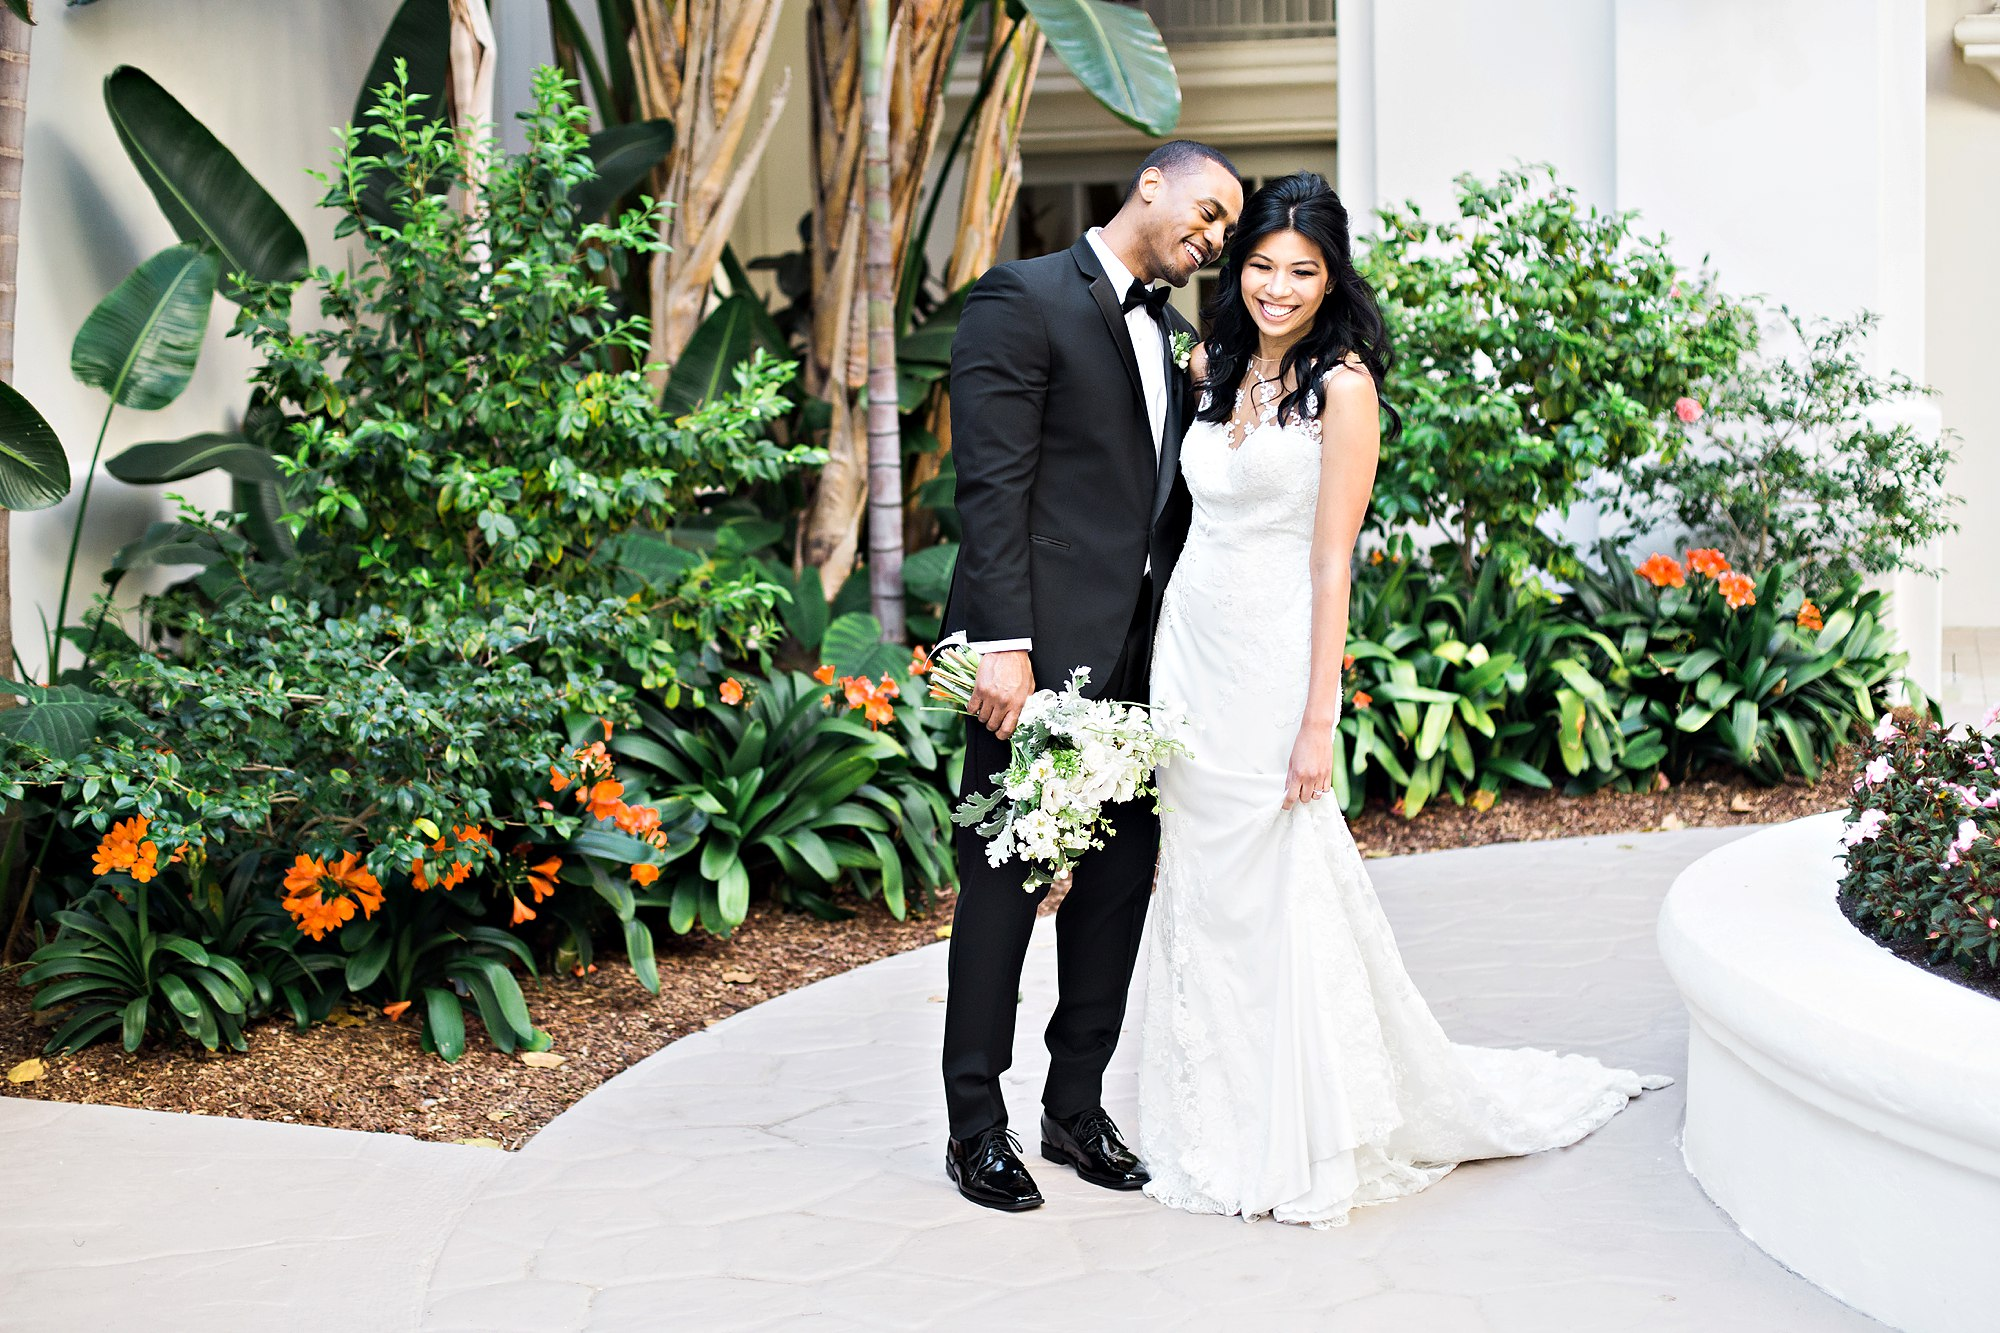 Park Hyatt Aviara Wedding - Evelyn Molina_0003.jpg